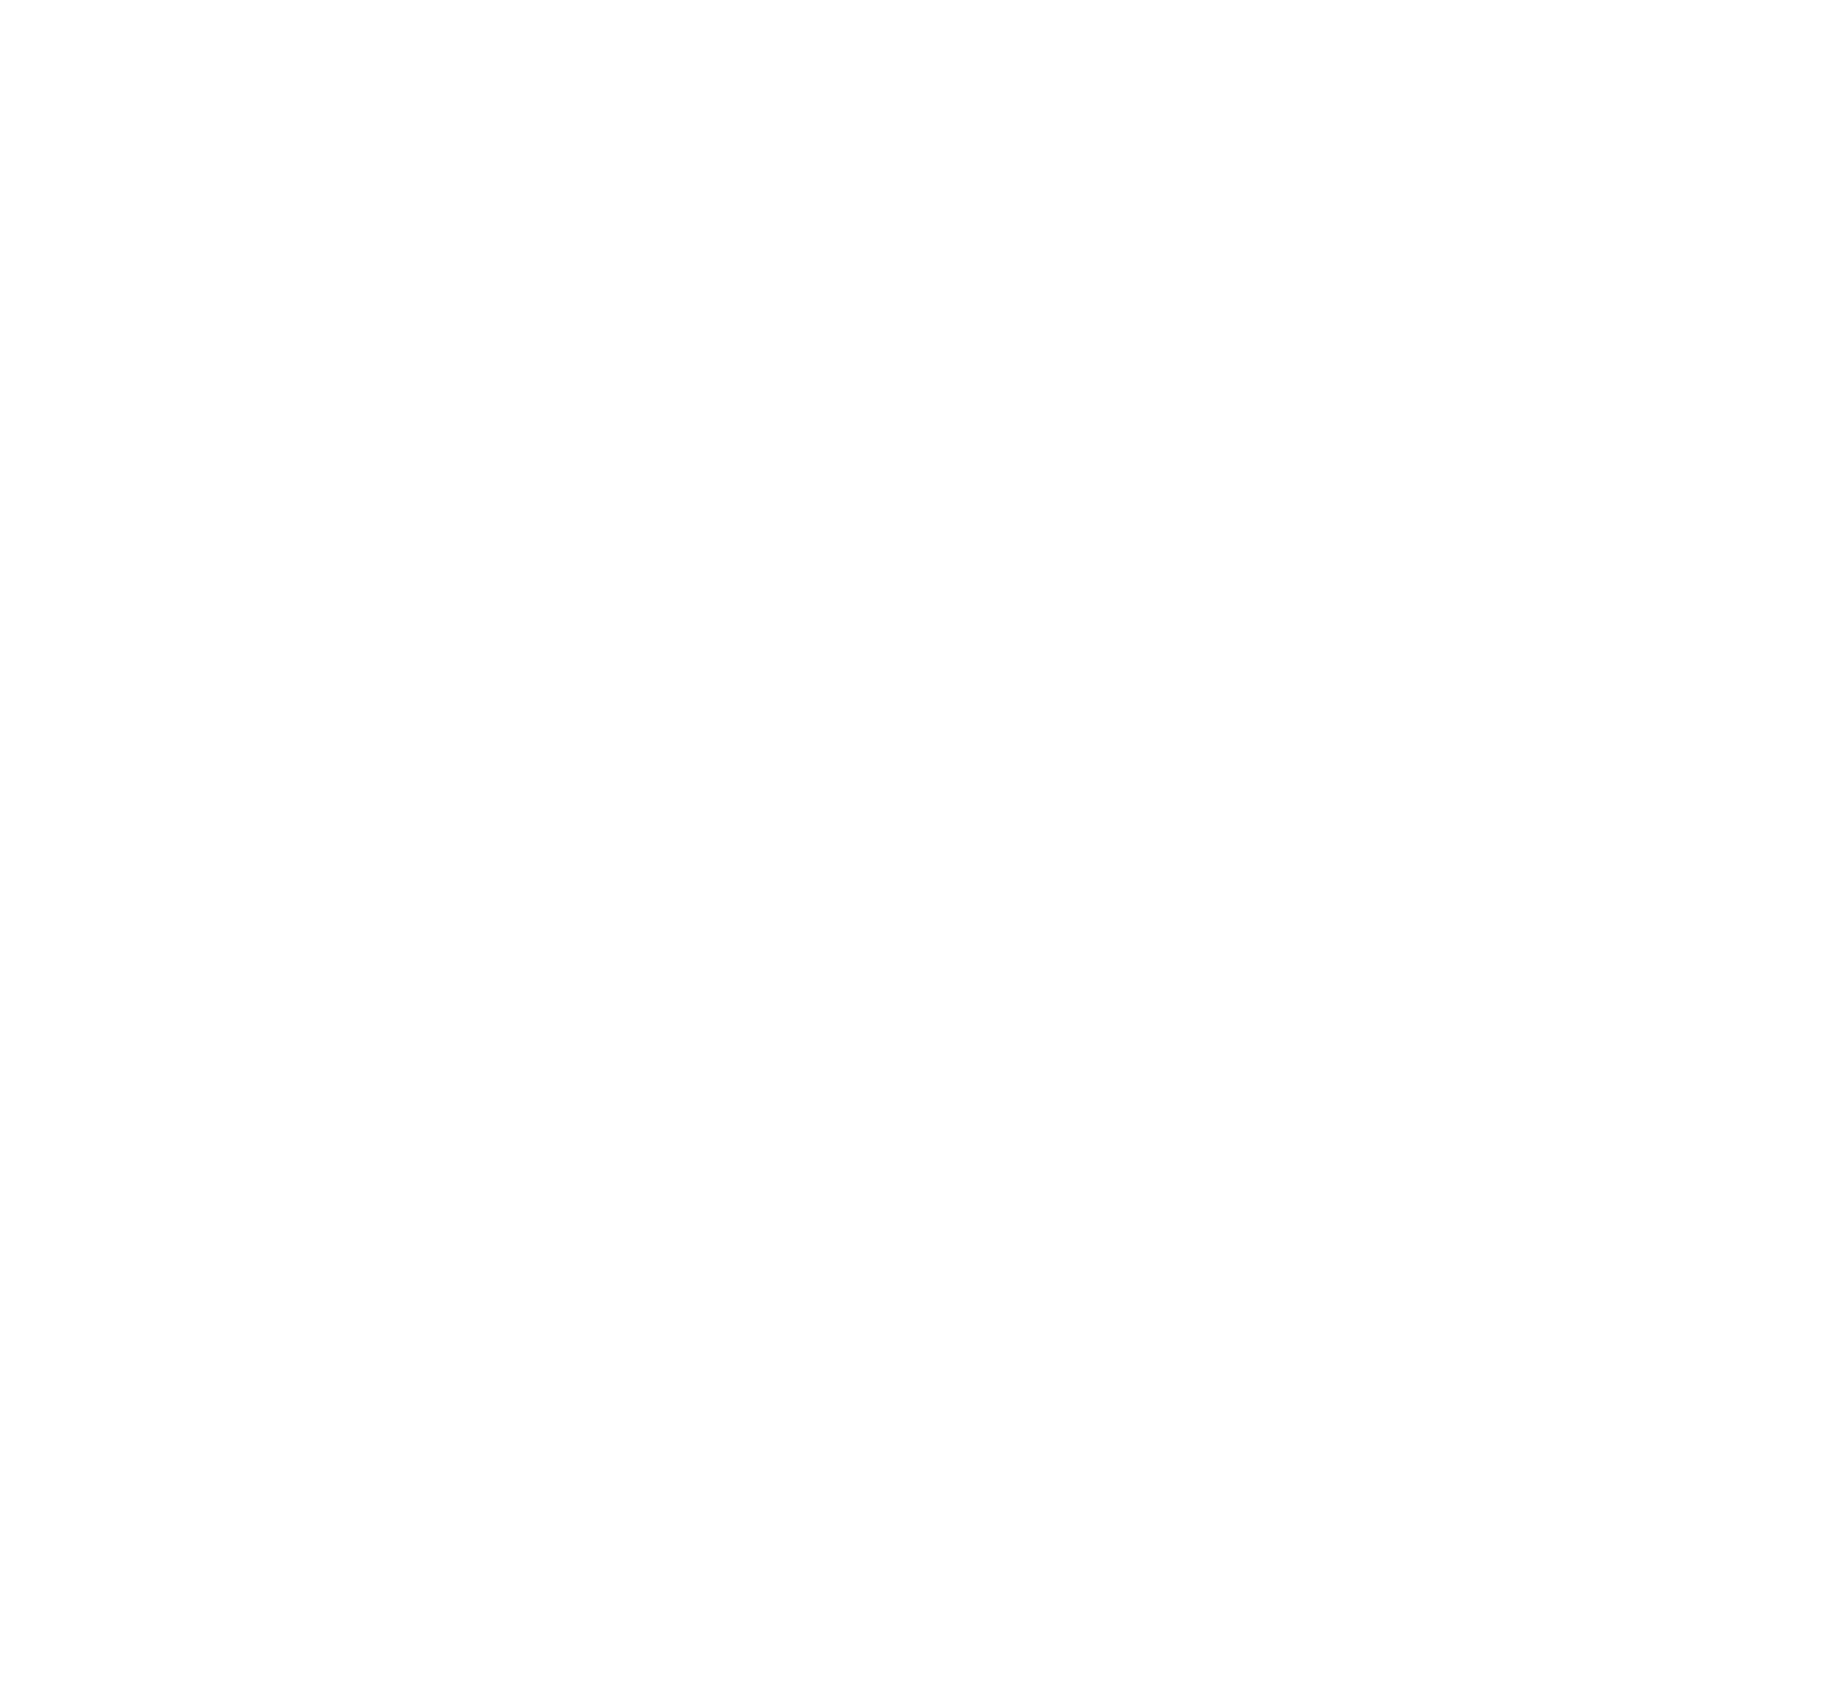 Snow border png. Angle point black and